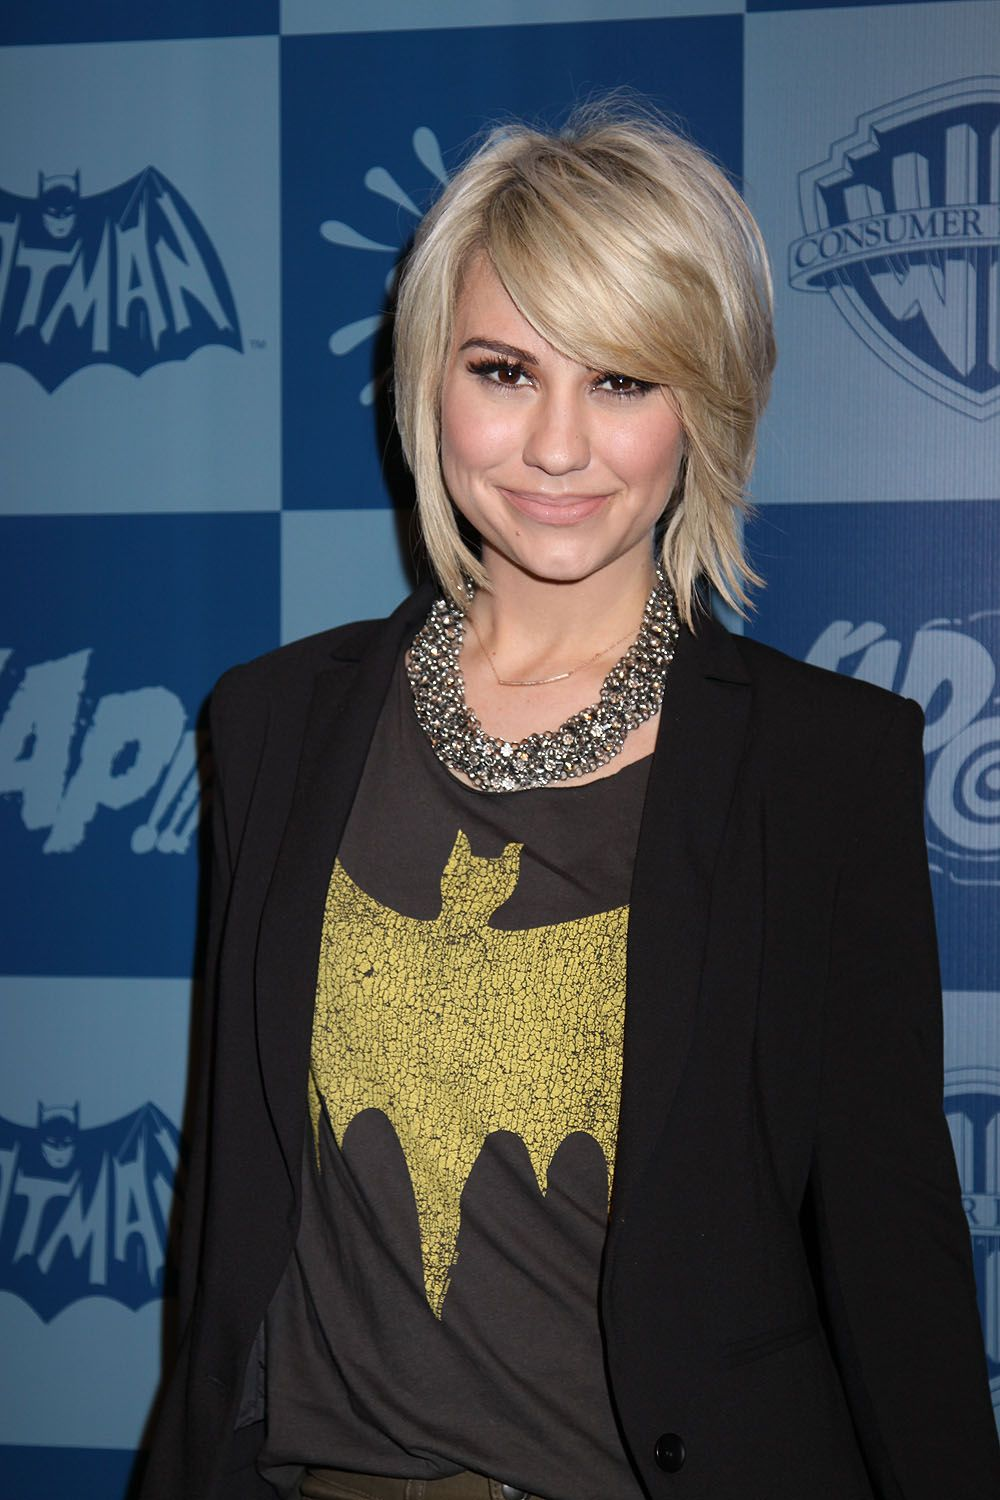 Watch Chic Short Haircut for 2019: Chelsea Kane's Hairstyle video